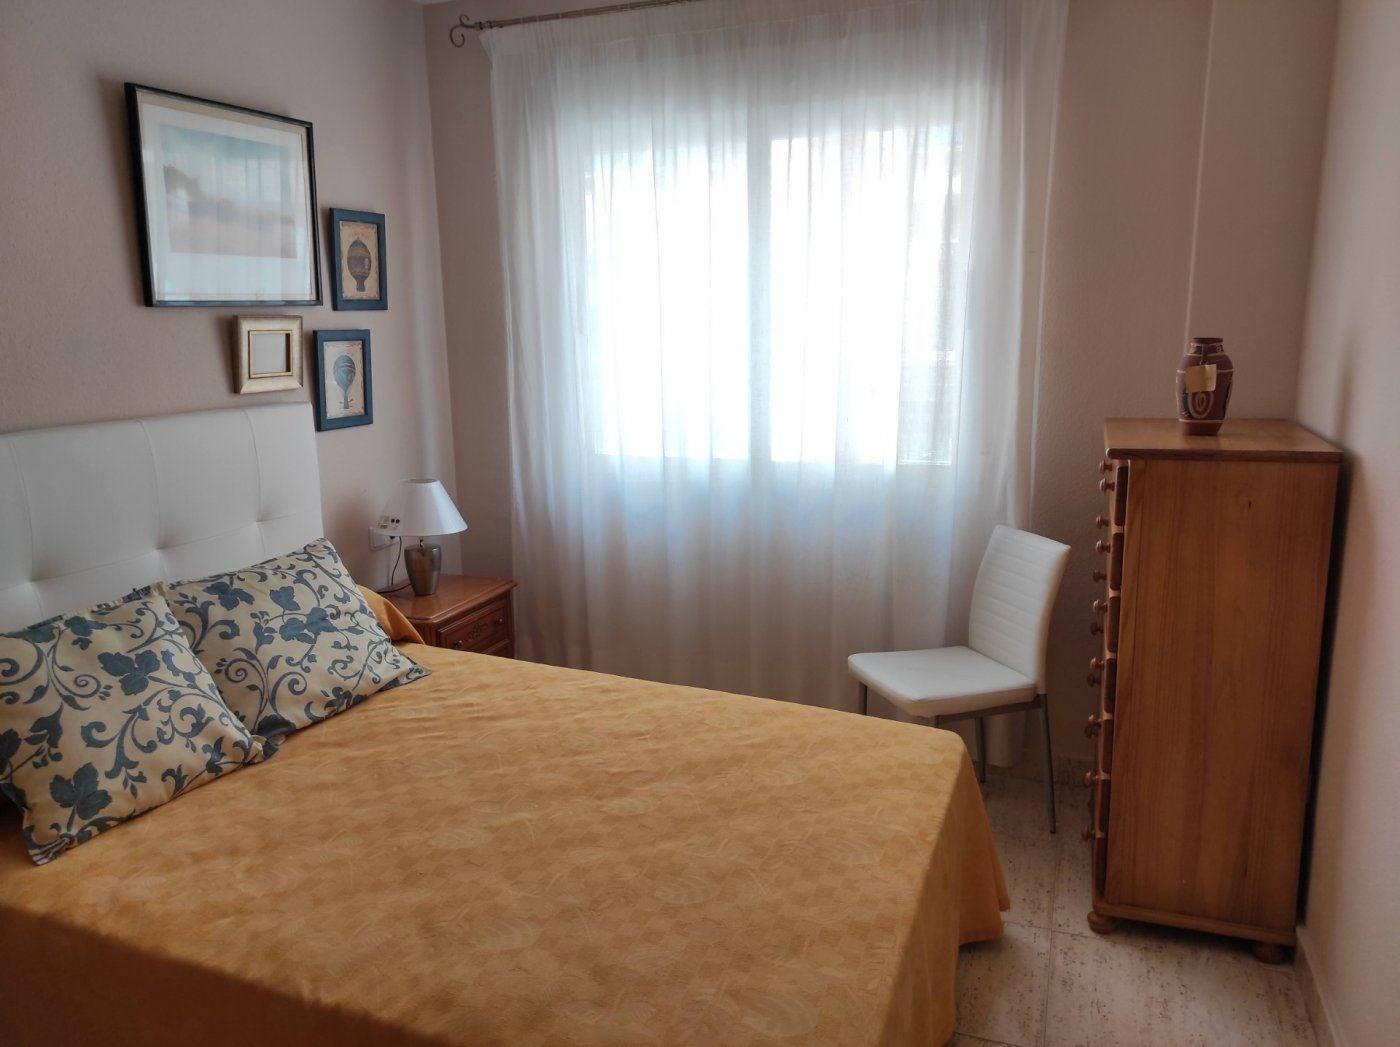 Gallery Image 1 of Flat For rent in Barrio Del Carmen, Murcia